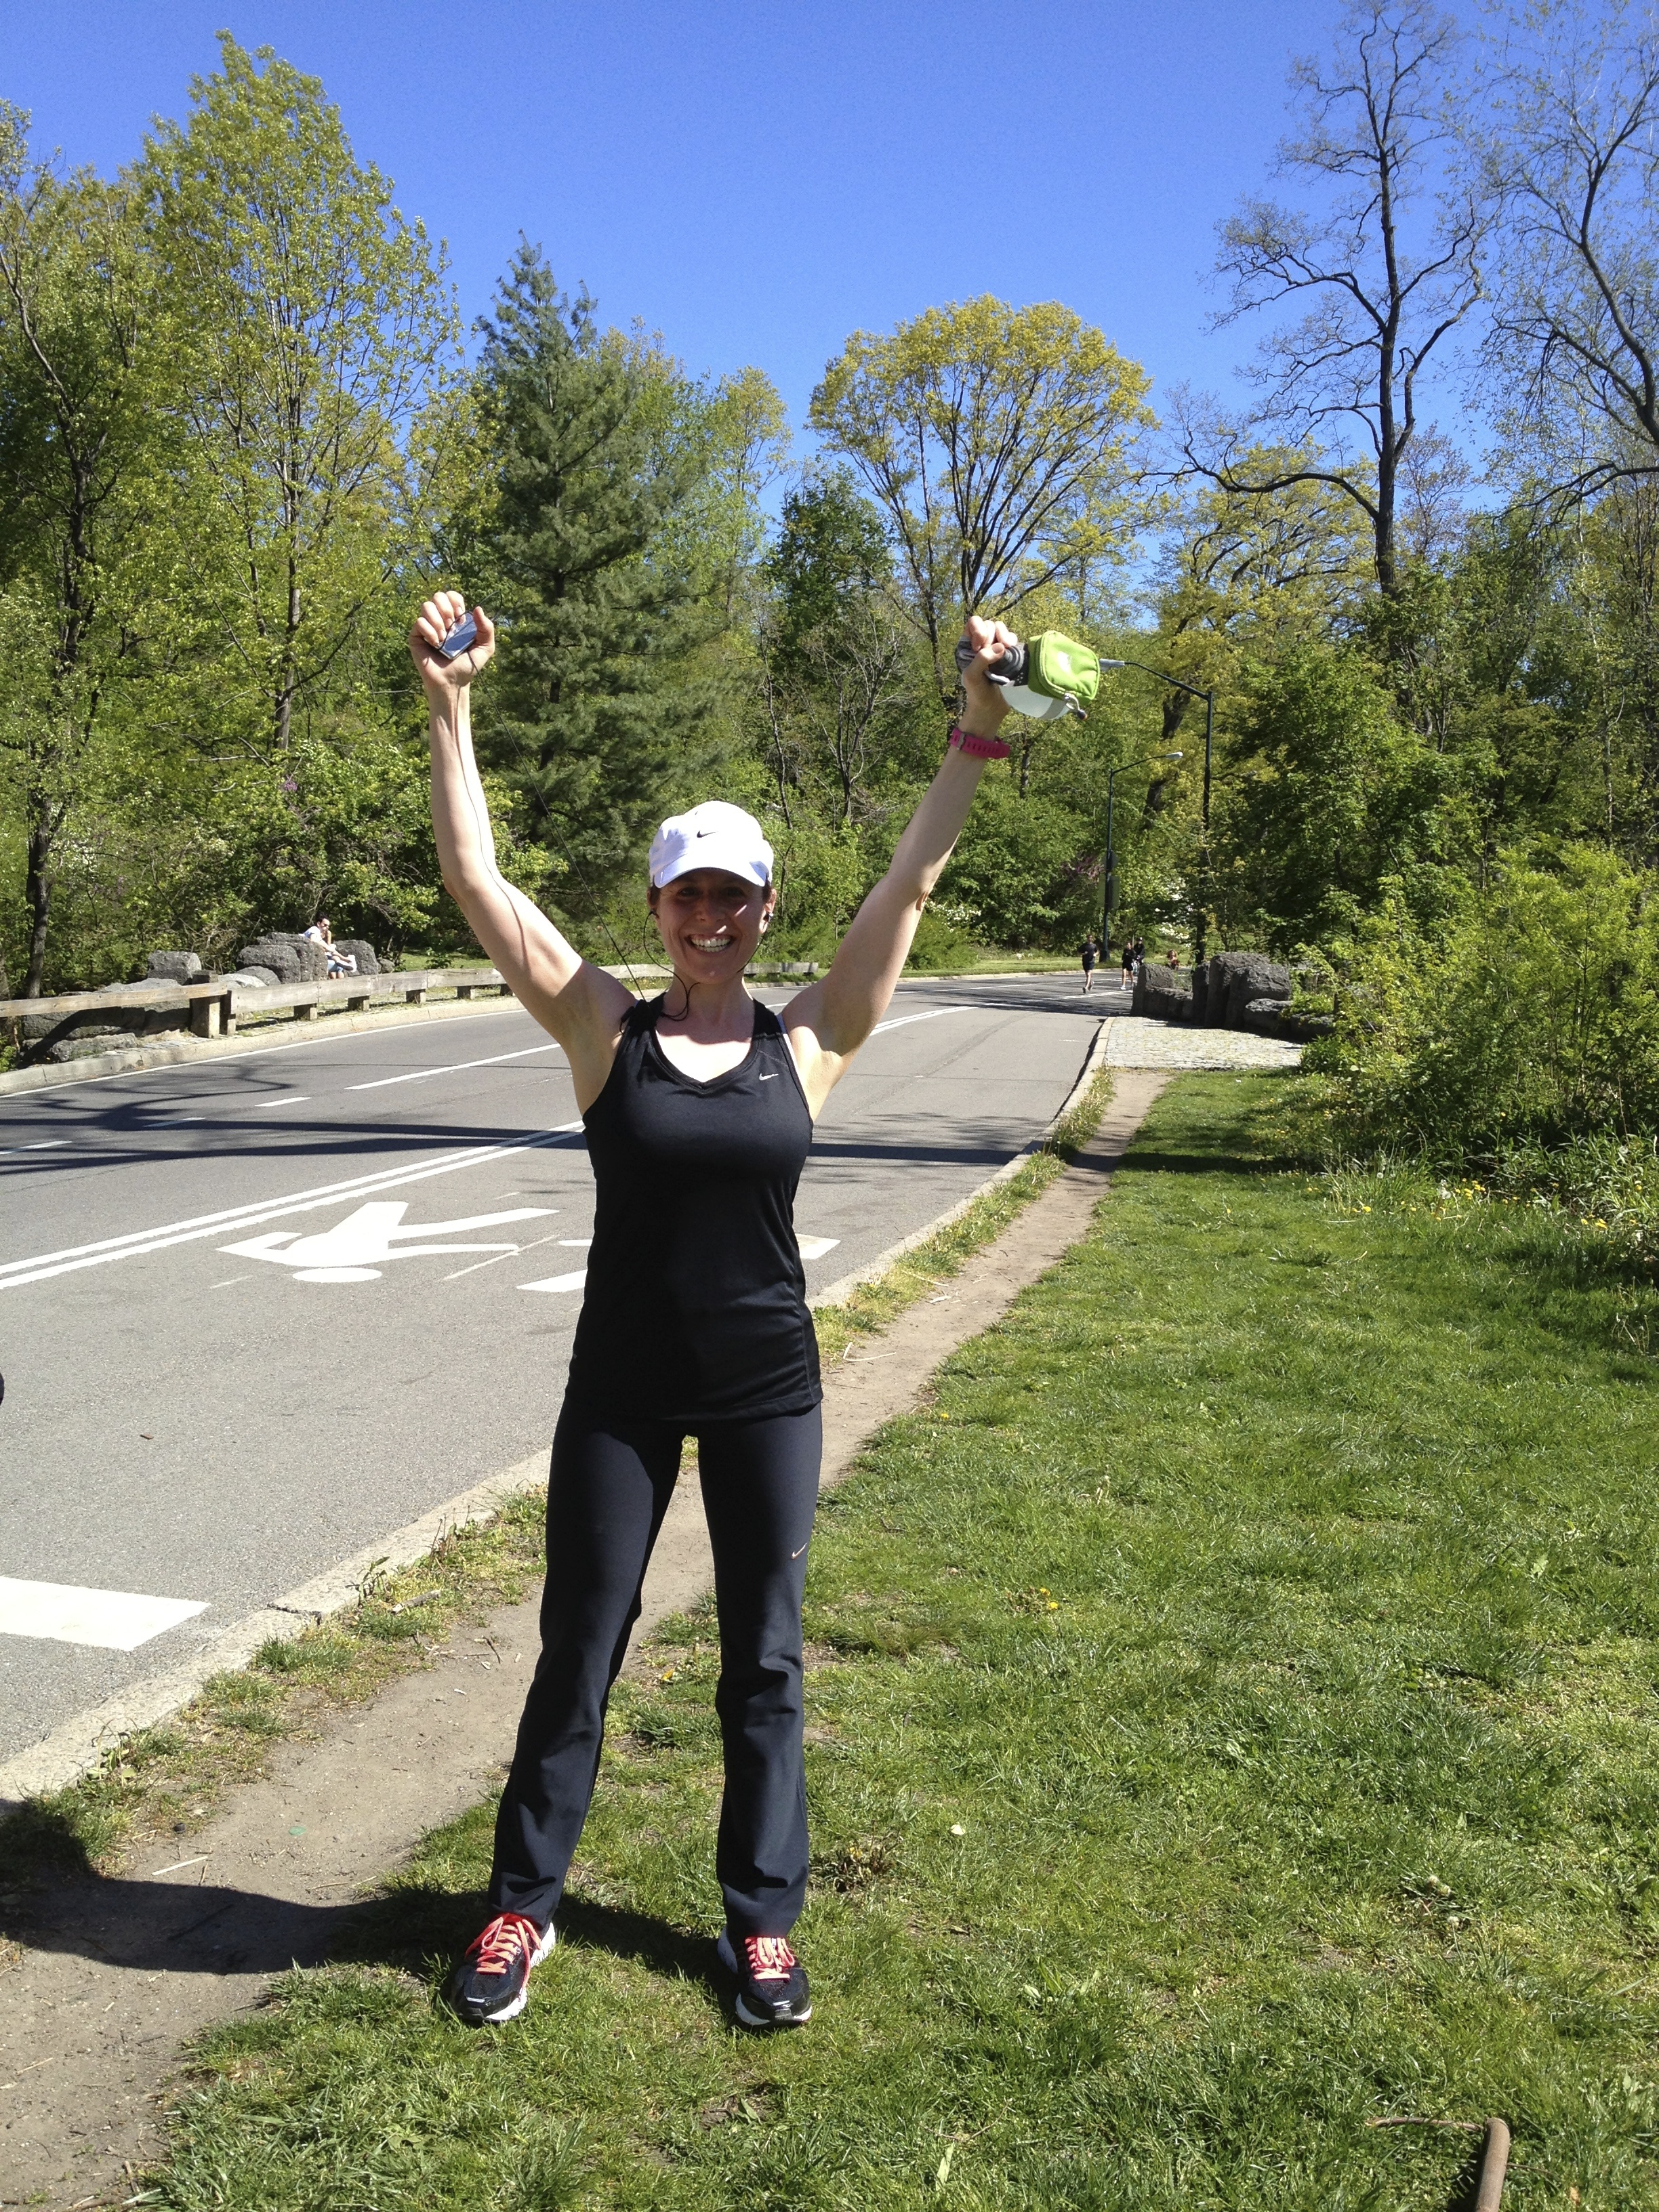 Me after our Hill Training workout on Harlem Hill